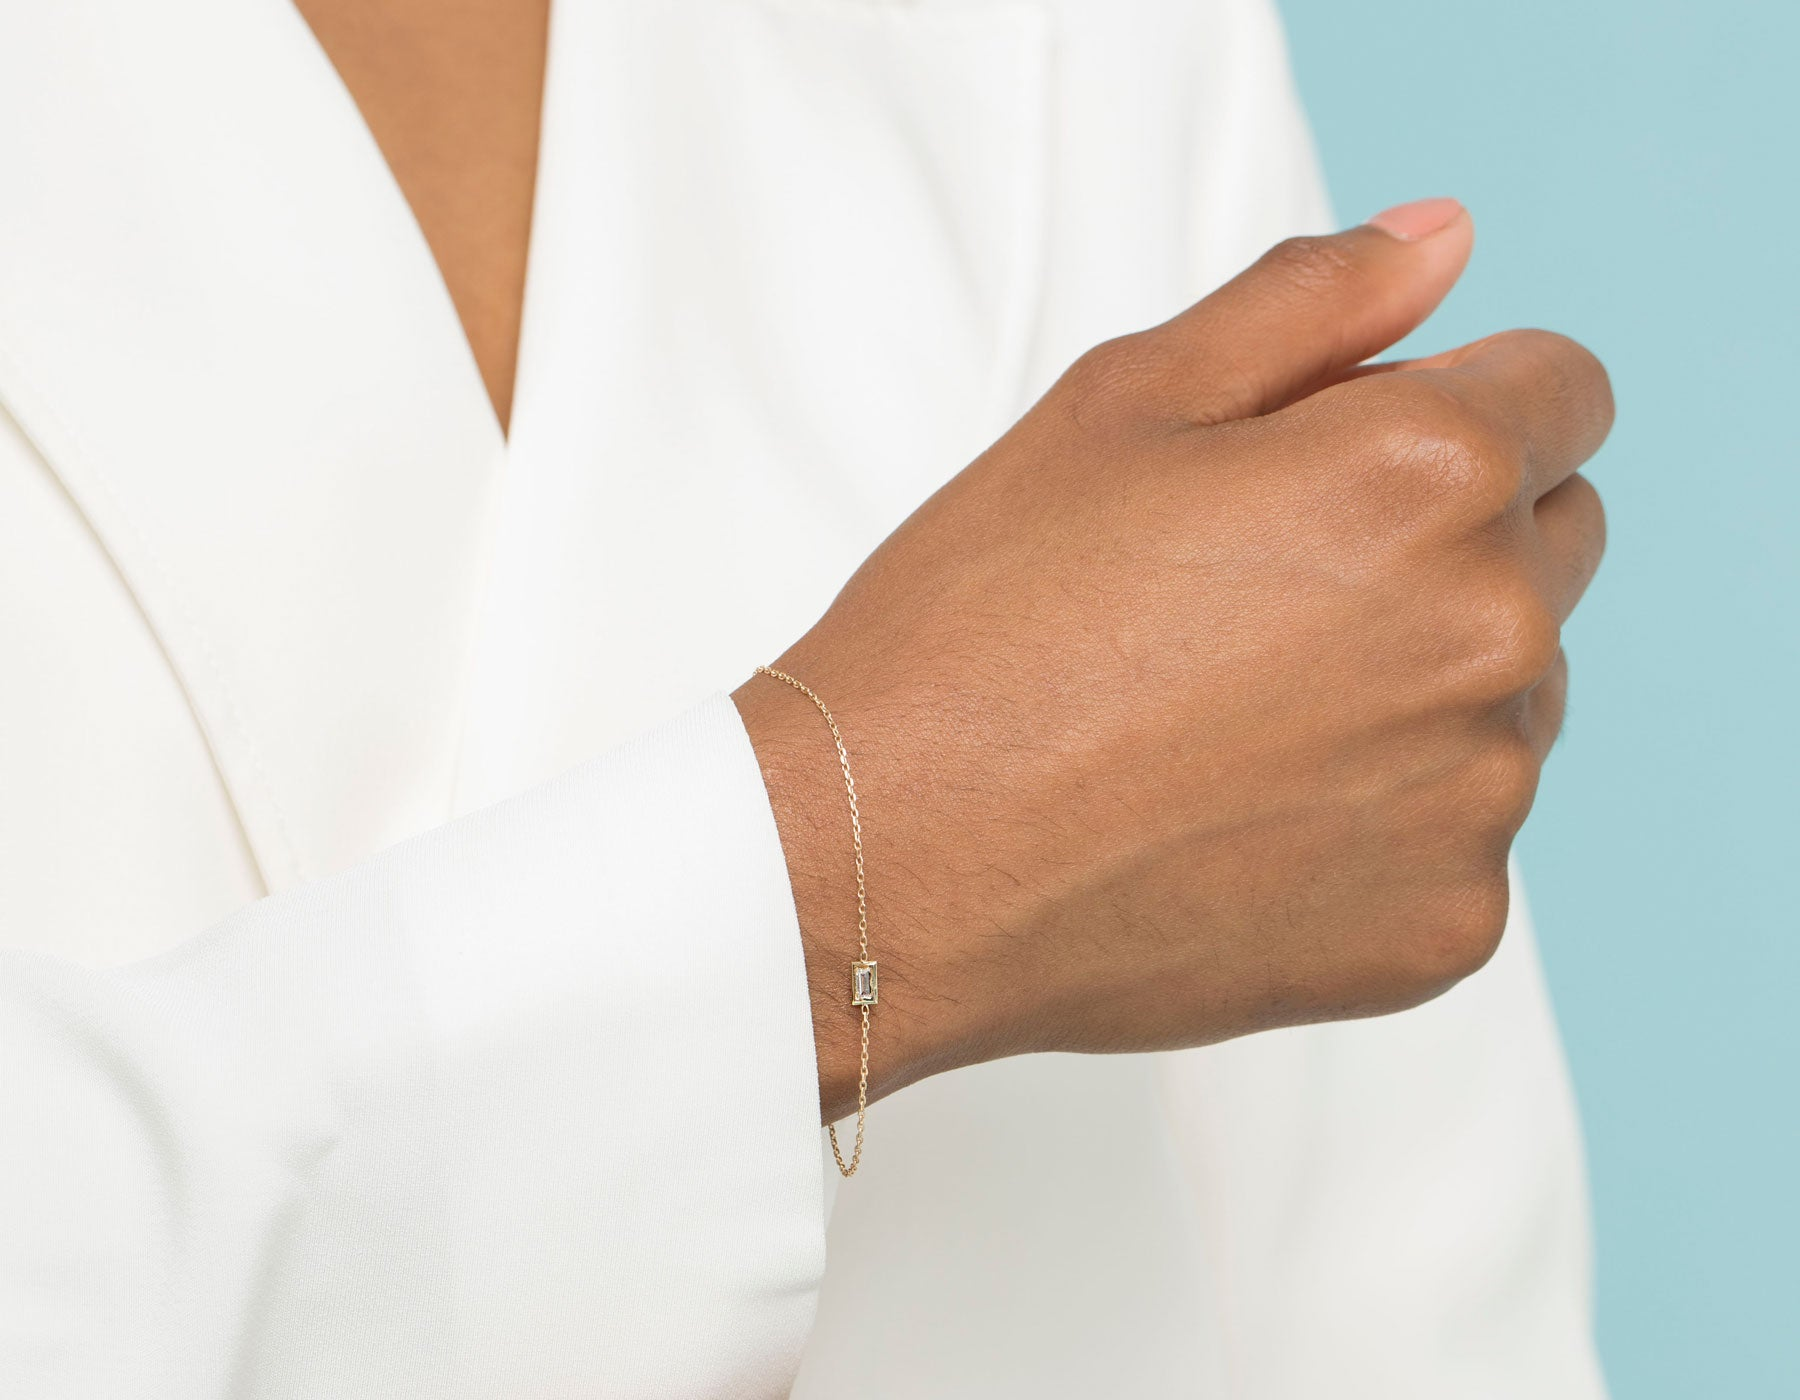 Model wearing dainty minimalist Baguette Diamond Bezel Bracelet by Vrai, 14K Rose Gold